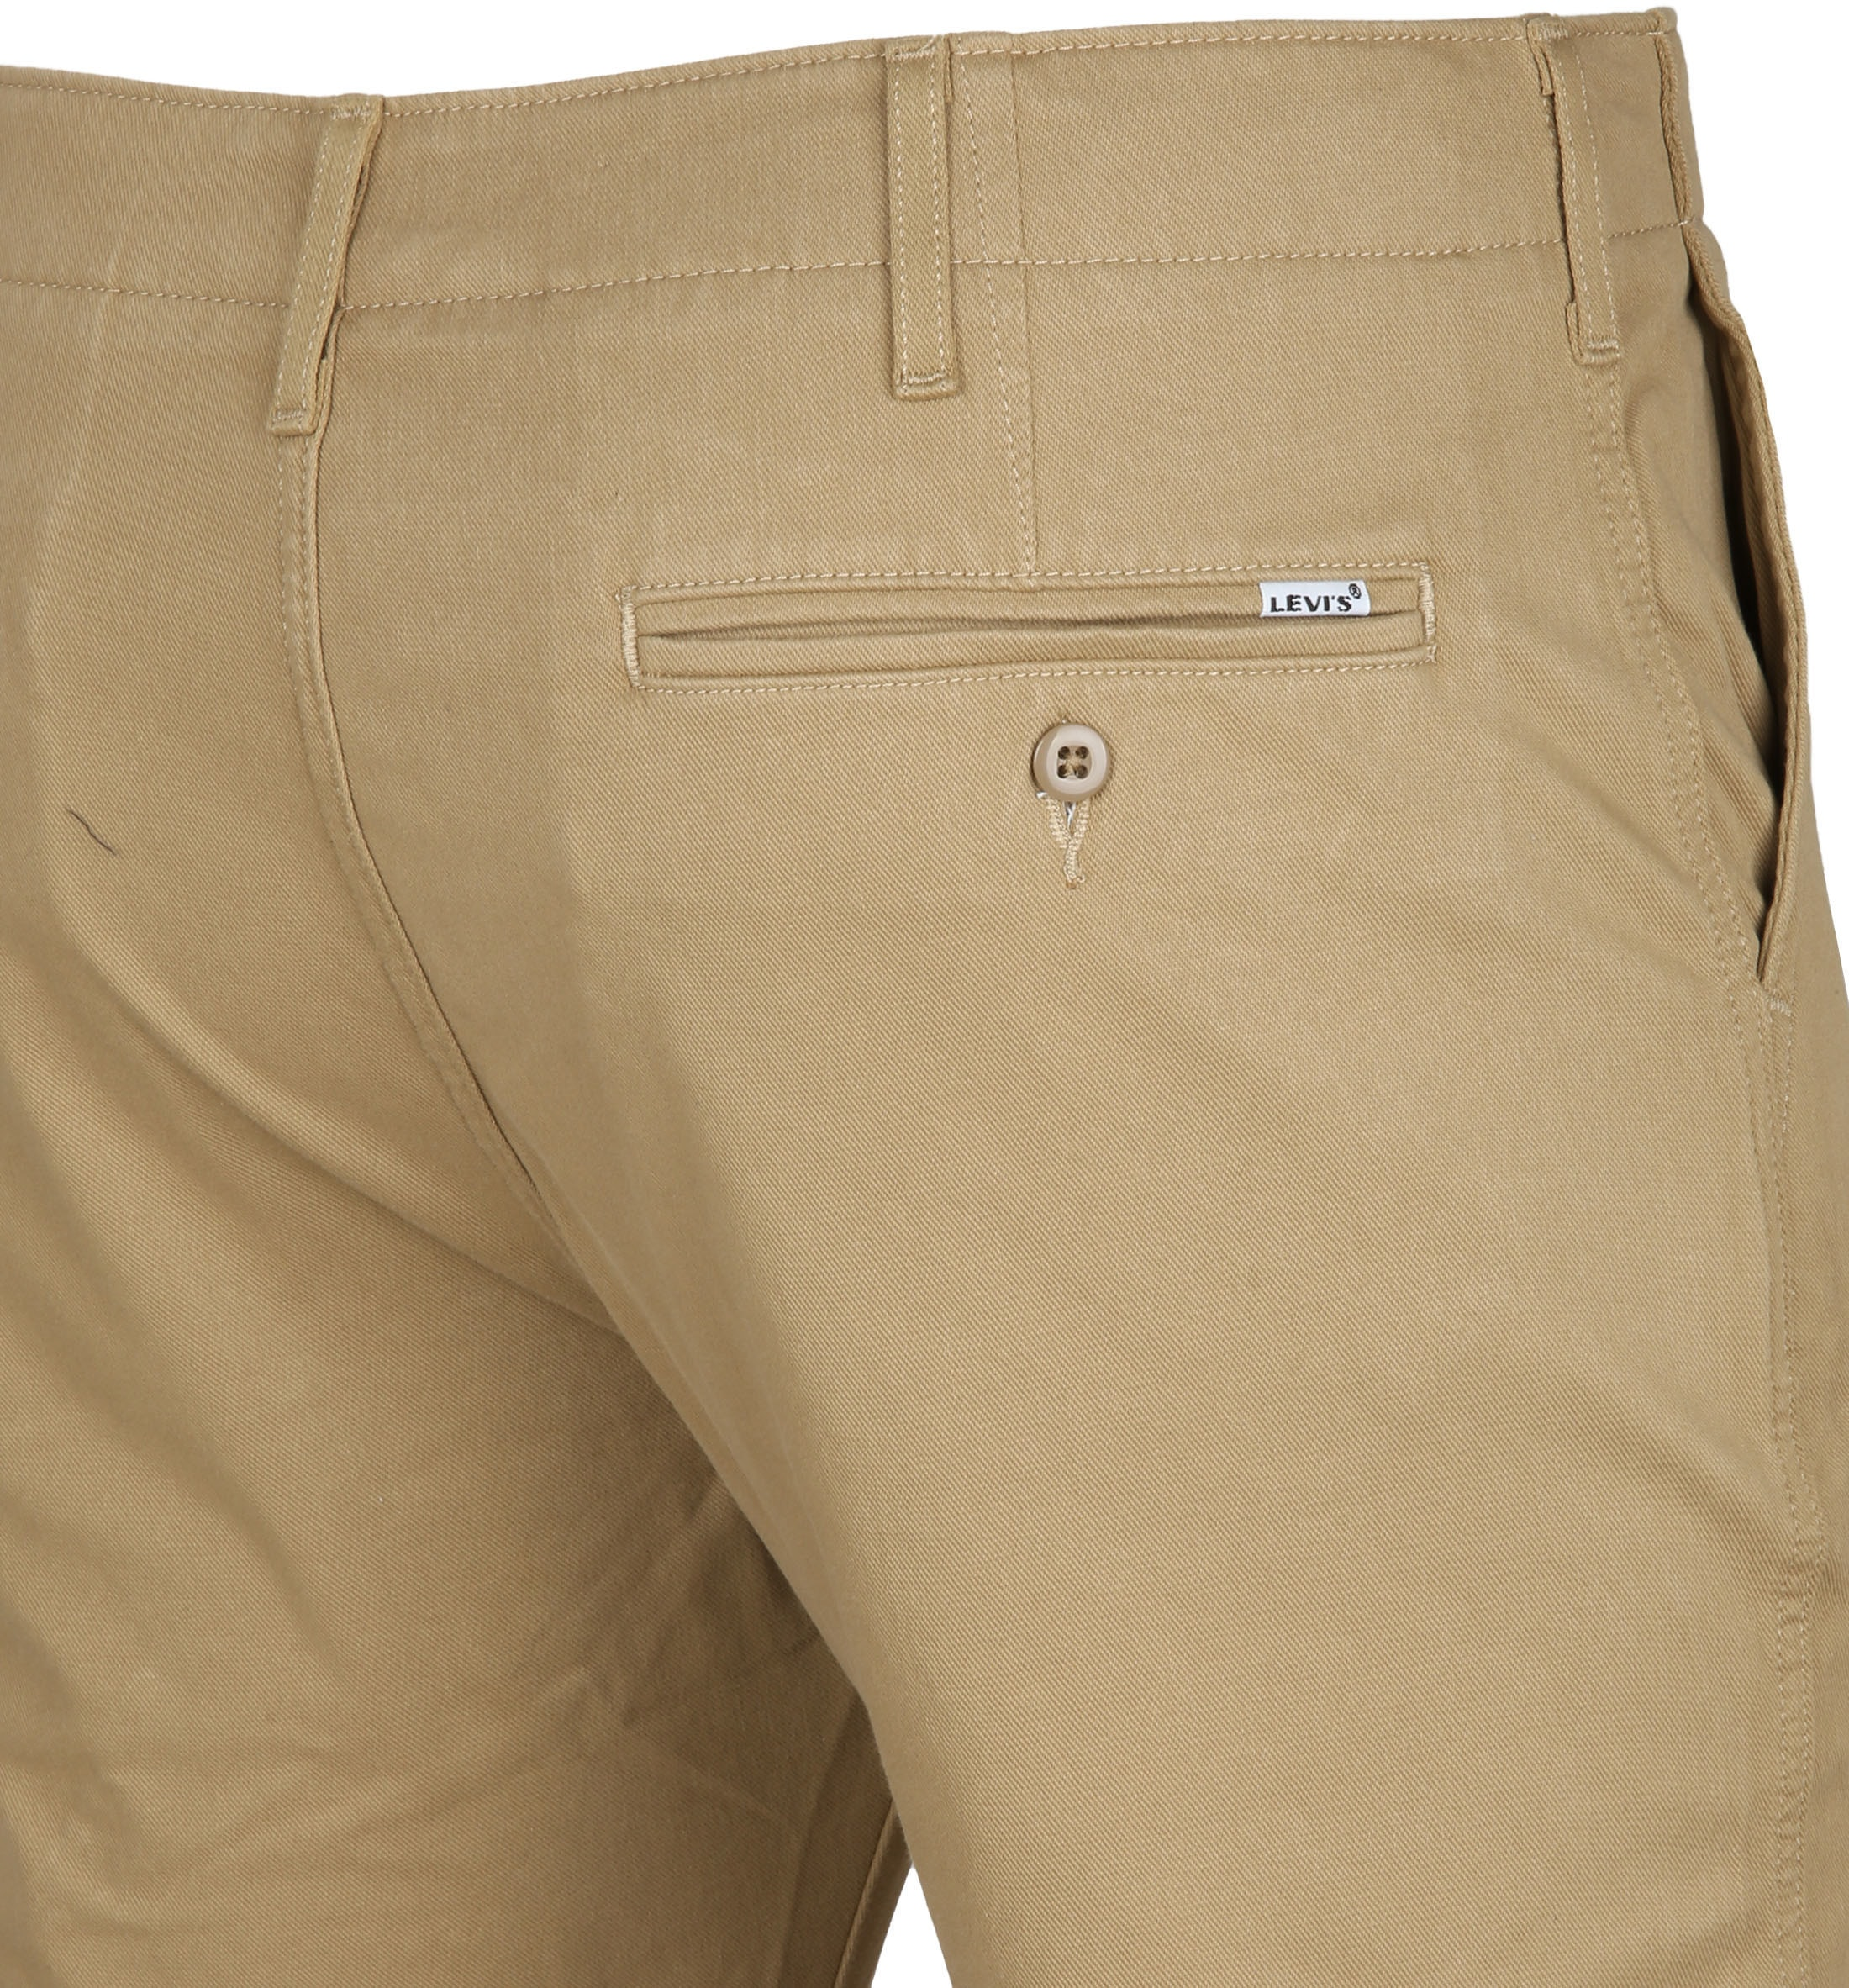 Levi's 502 True Chino Harvest Gold foto 3